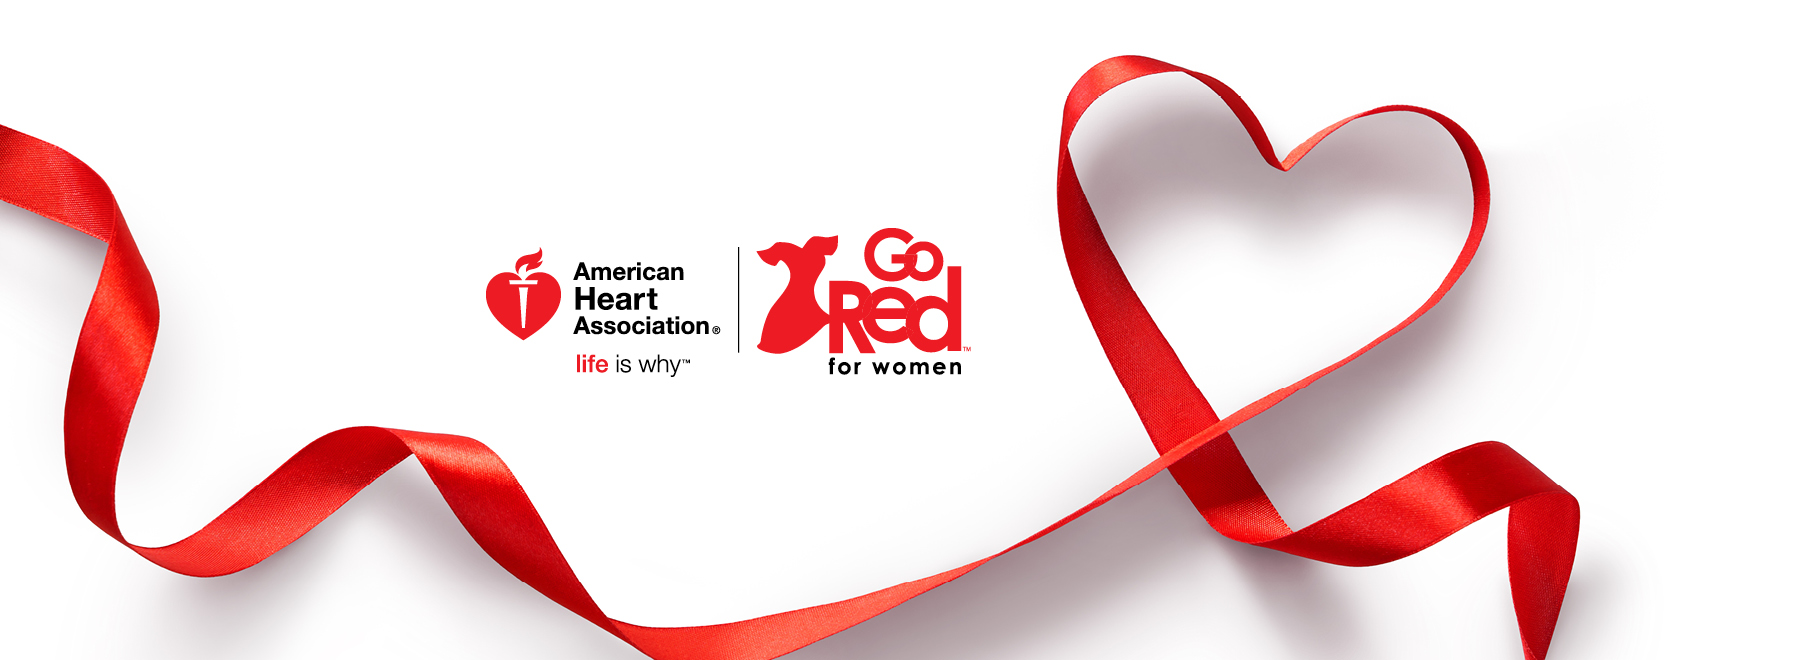 February is heart month. UMMC is proud to be a part of Go Red for Women.